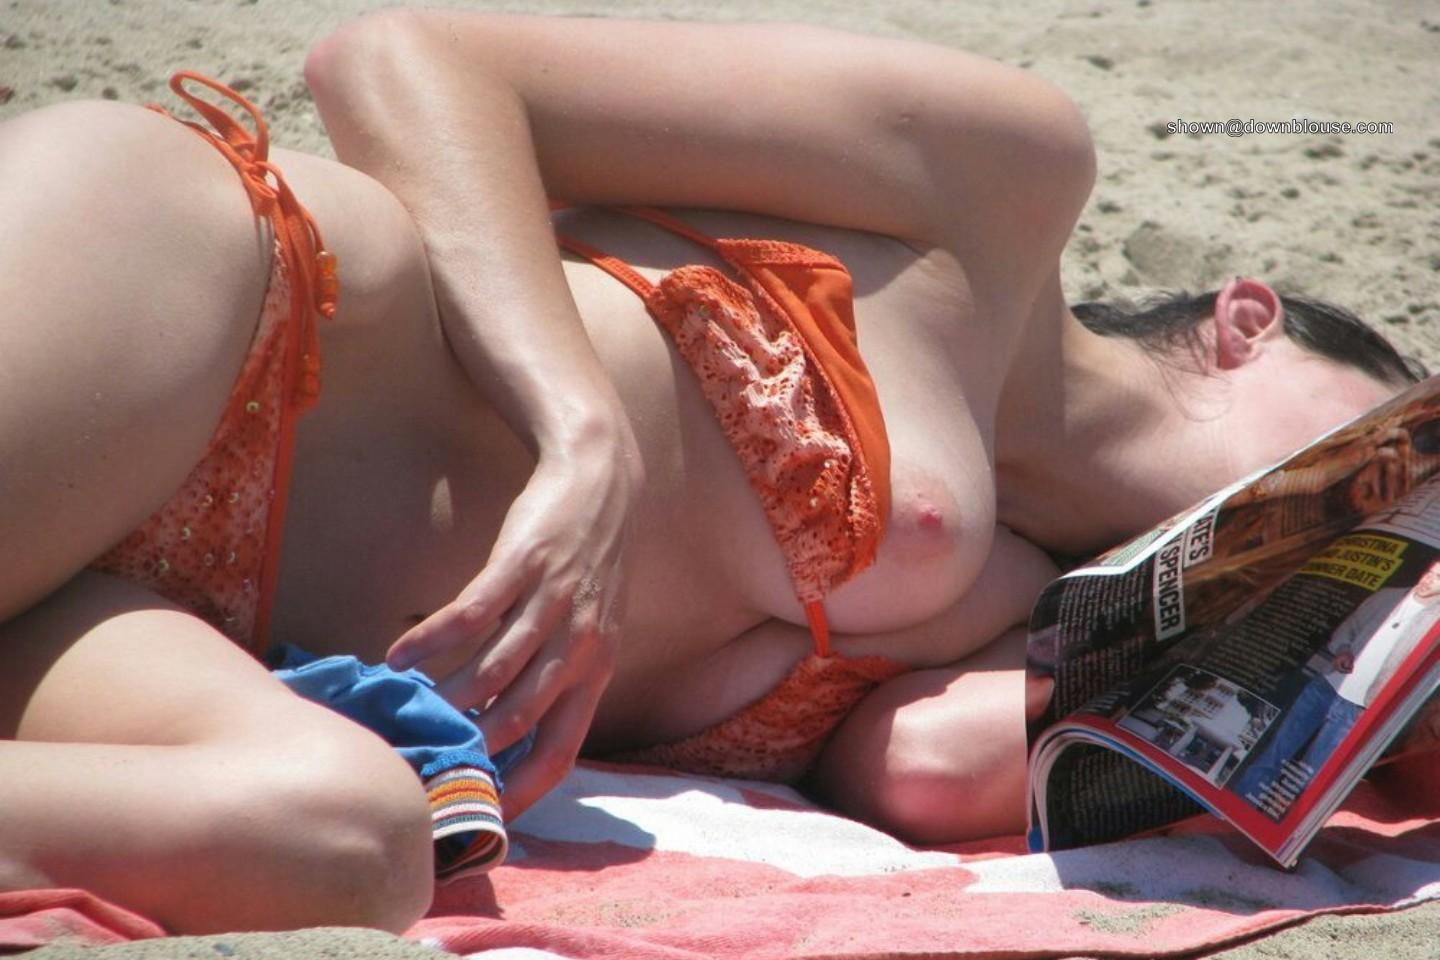 Bikini malfunction on the beach High quality images in more than 40 categories!